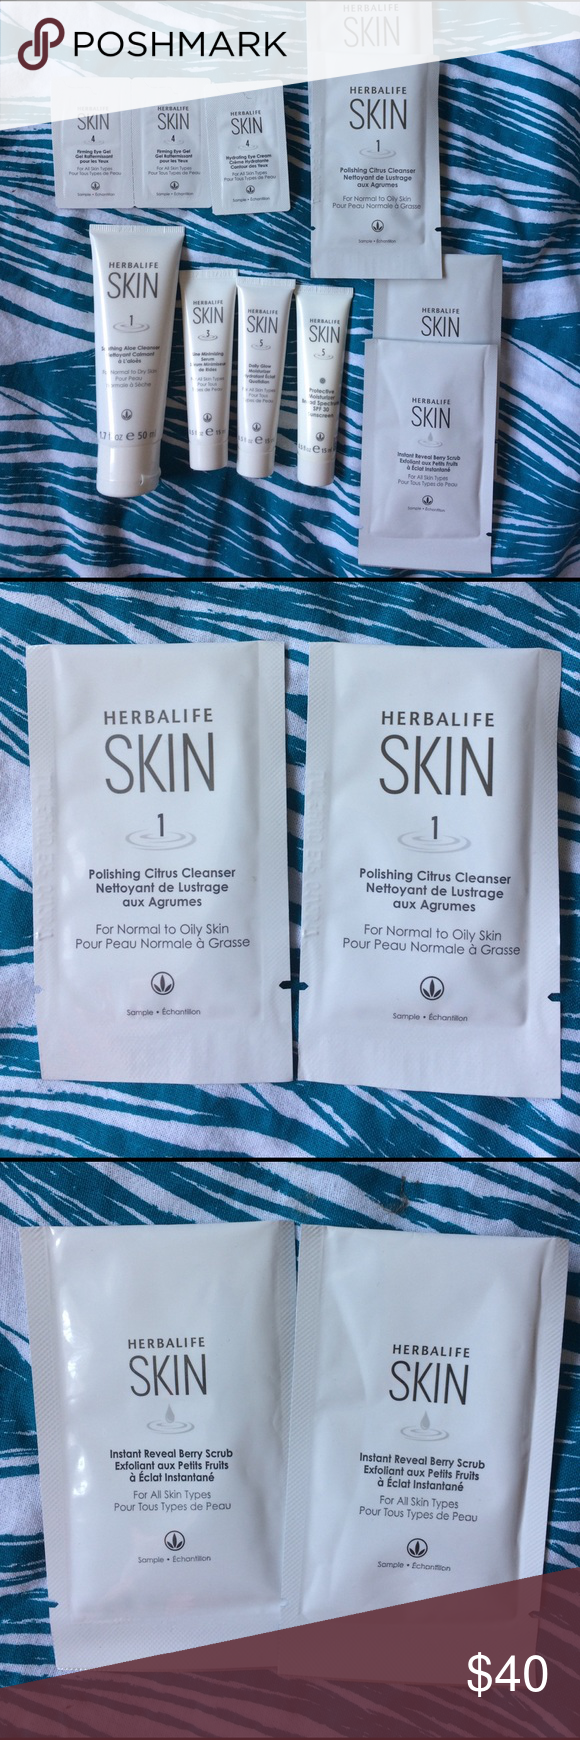 Care herbal life product skin - Care Herbal Life Product Skin 64